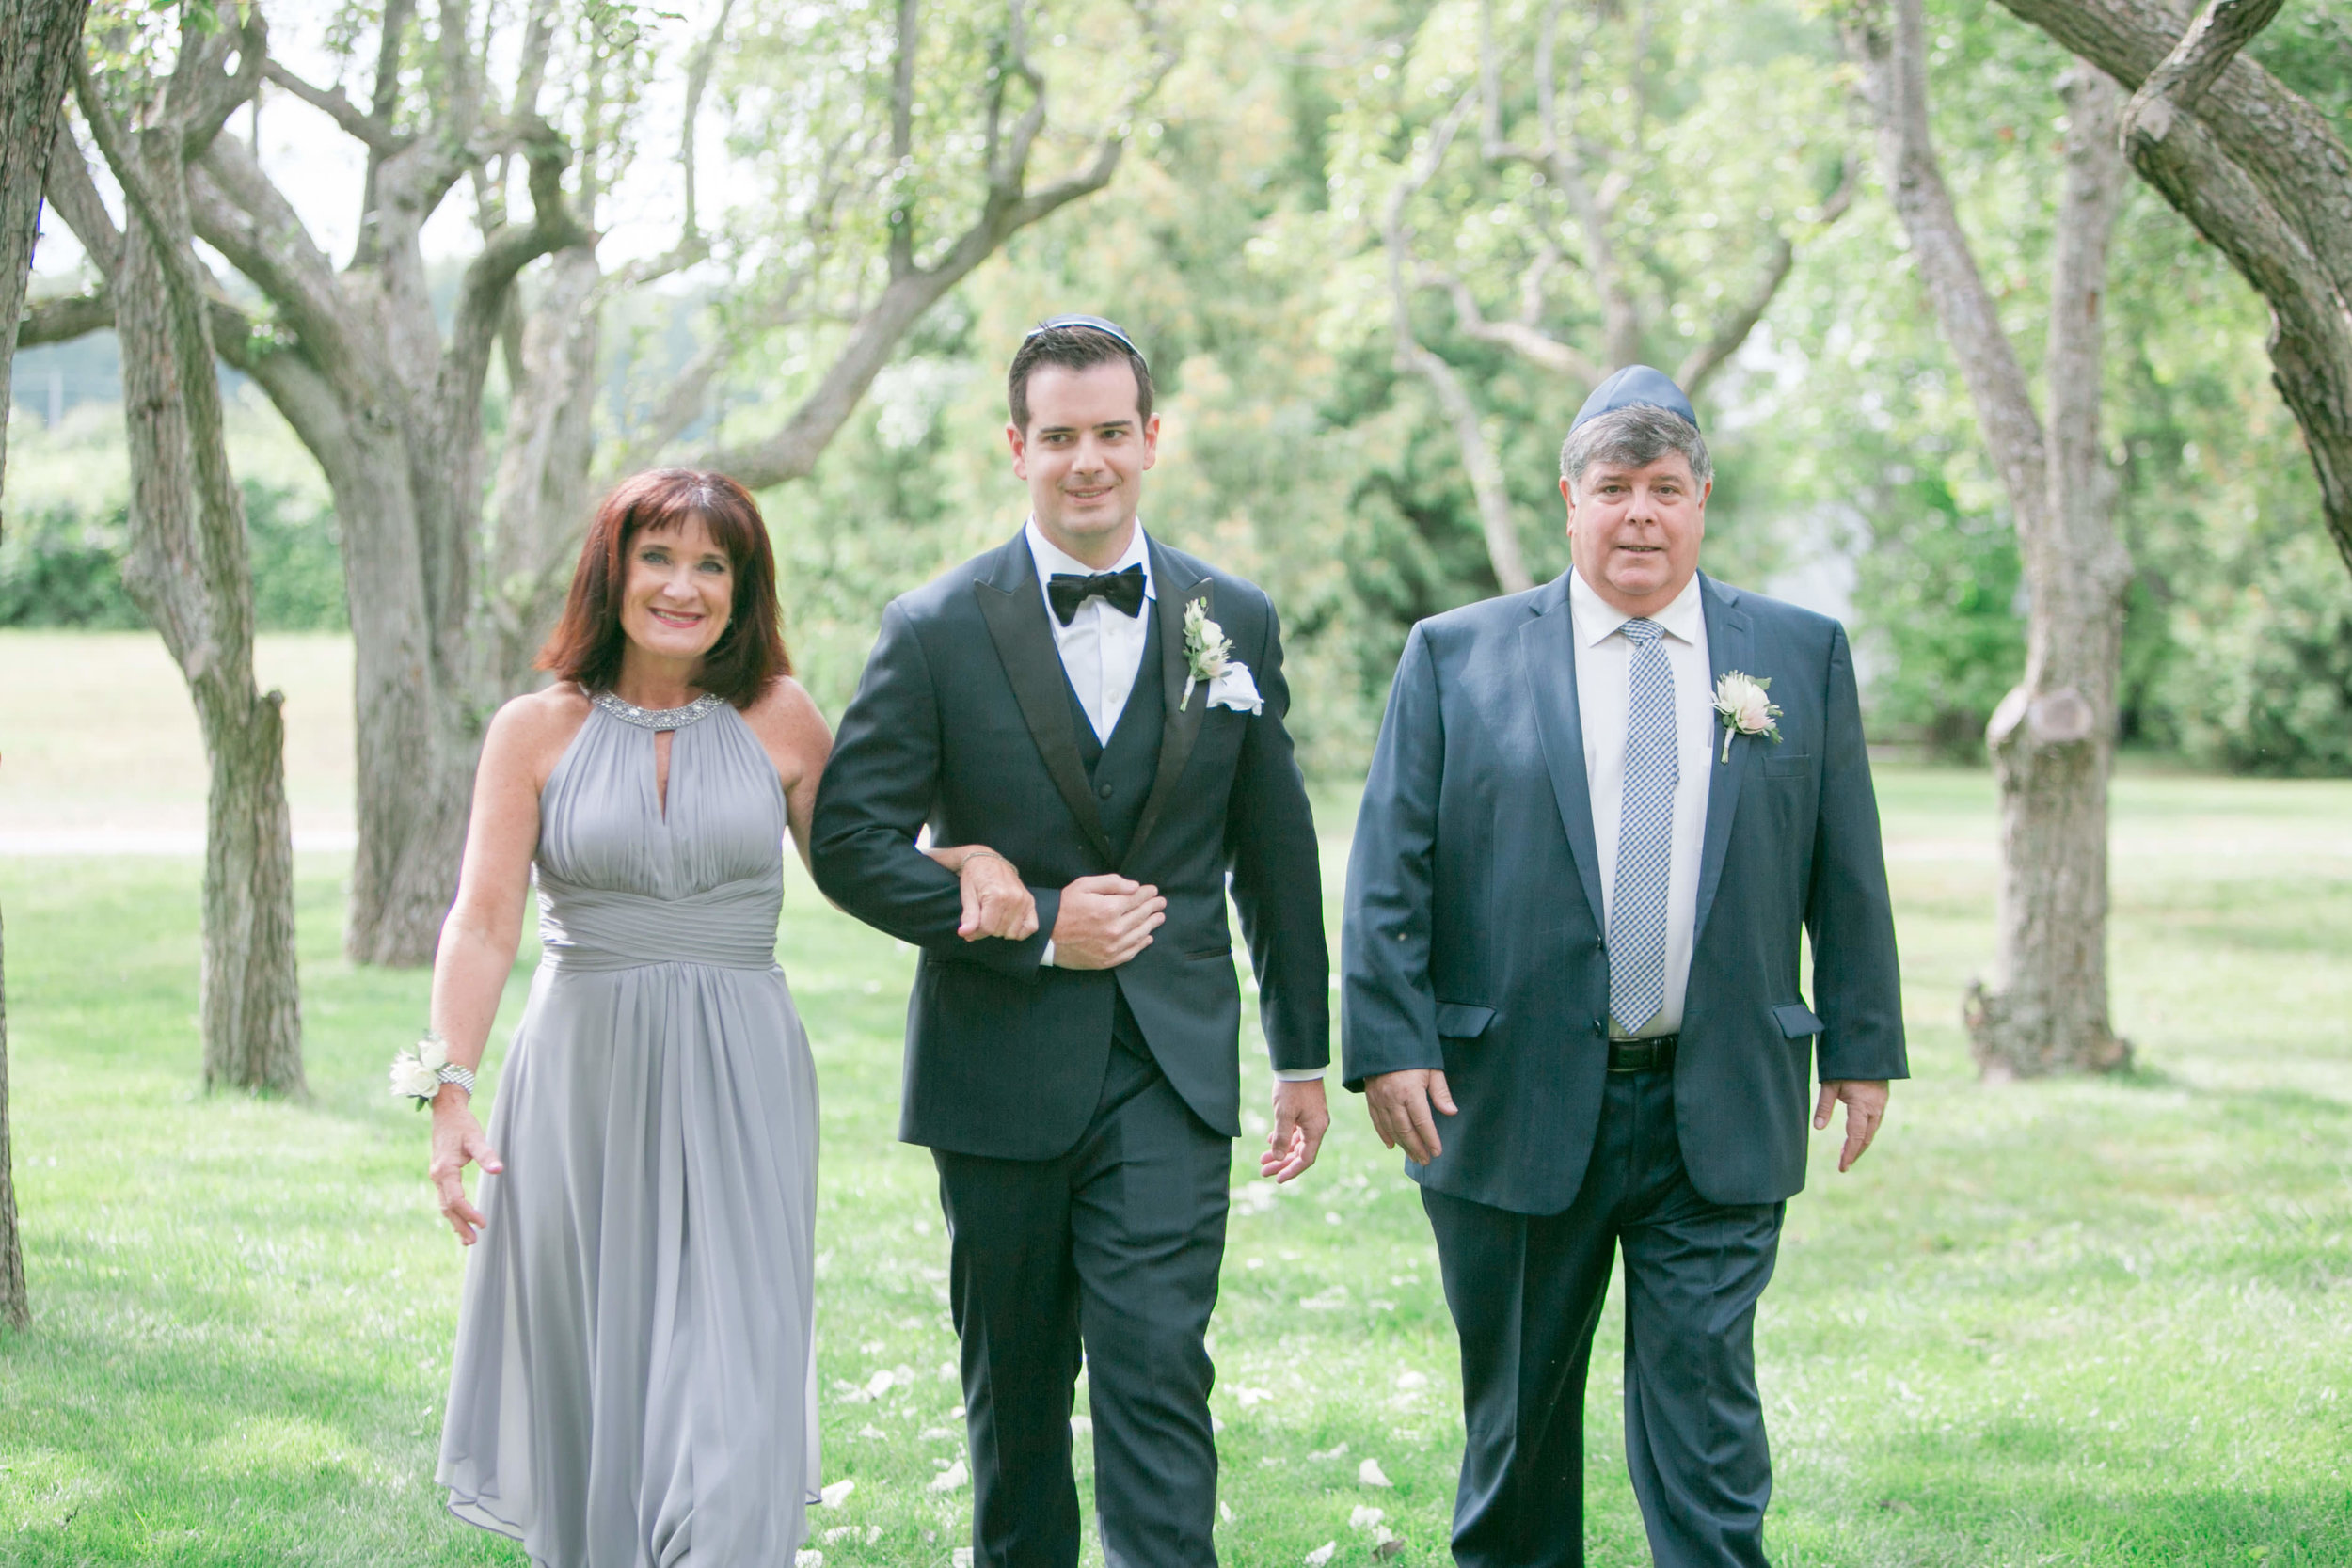 Ashley___Zac___Daniel_Ricci_Weddings___High_Res._Finals_262.jpg